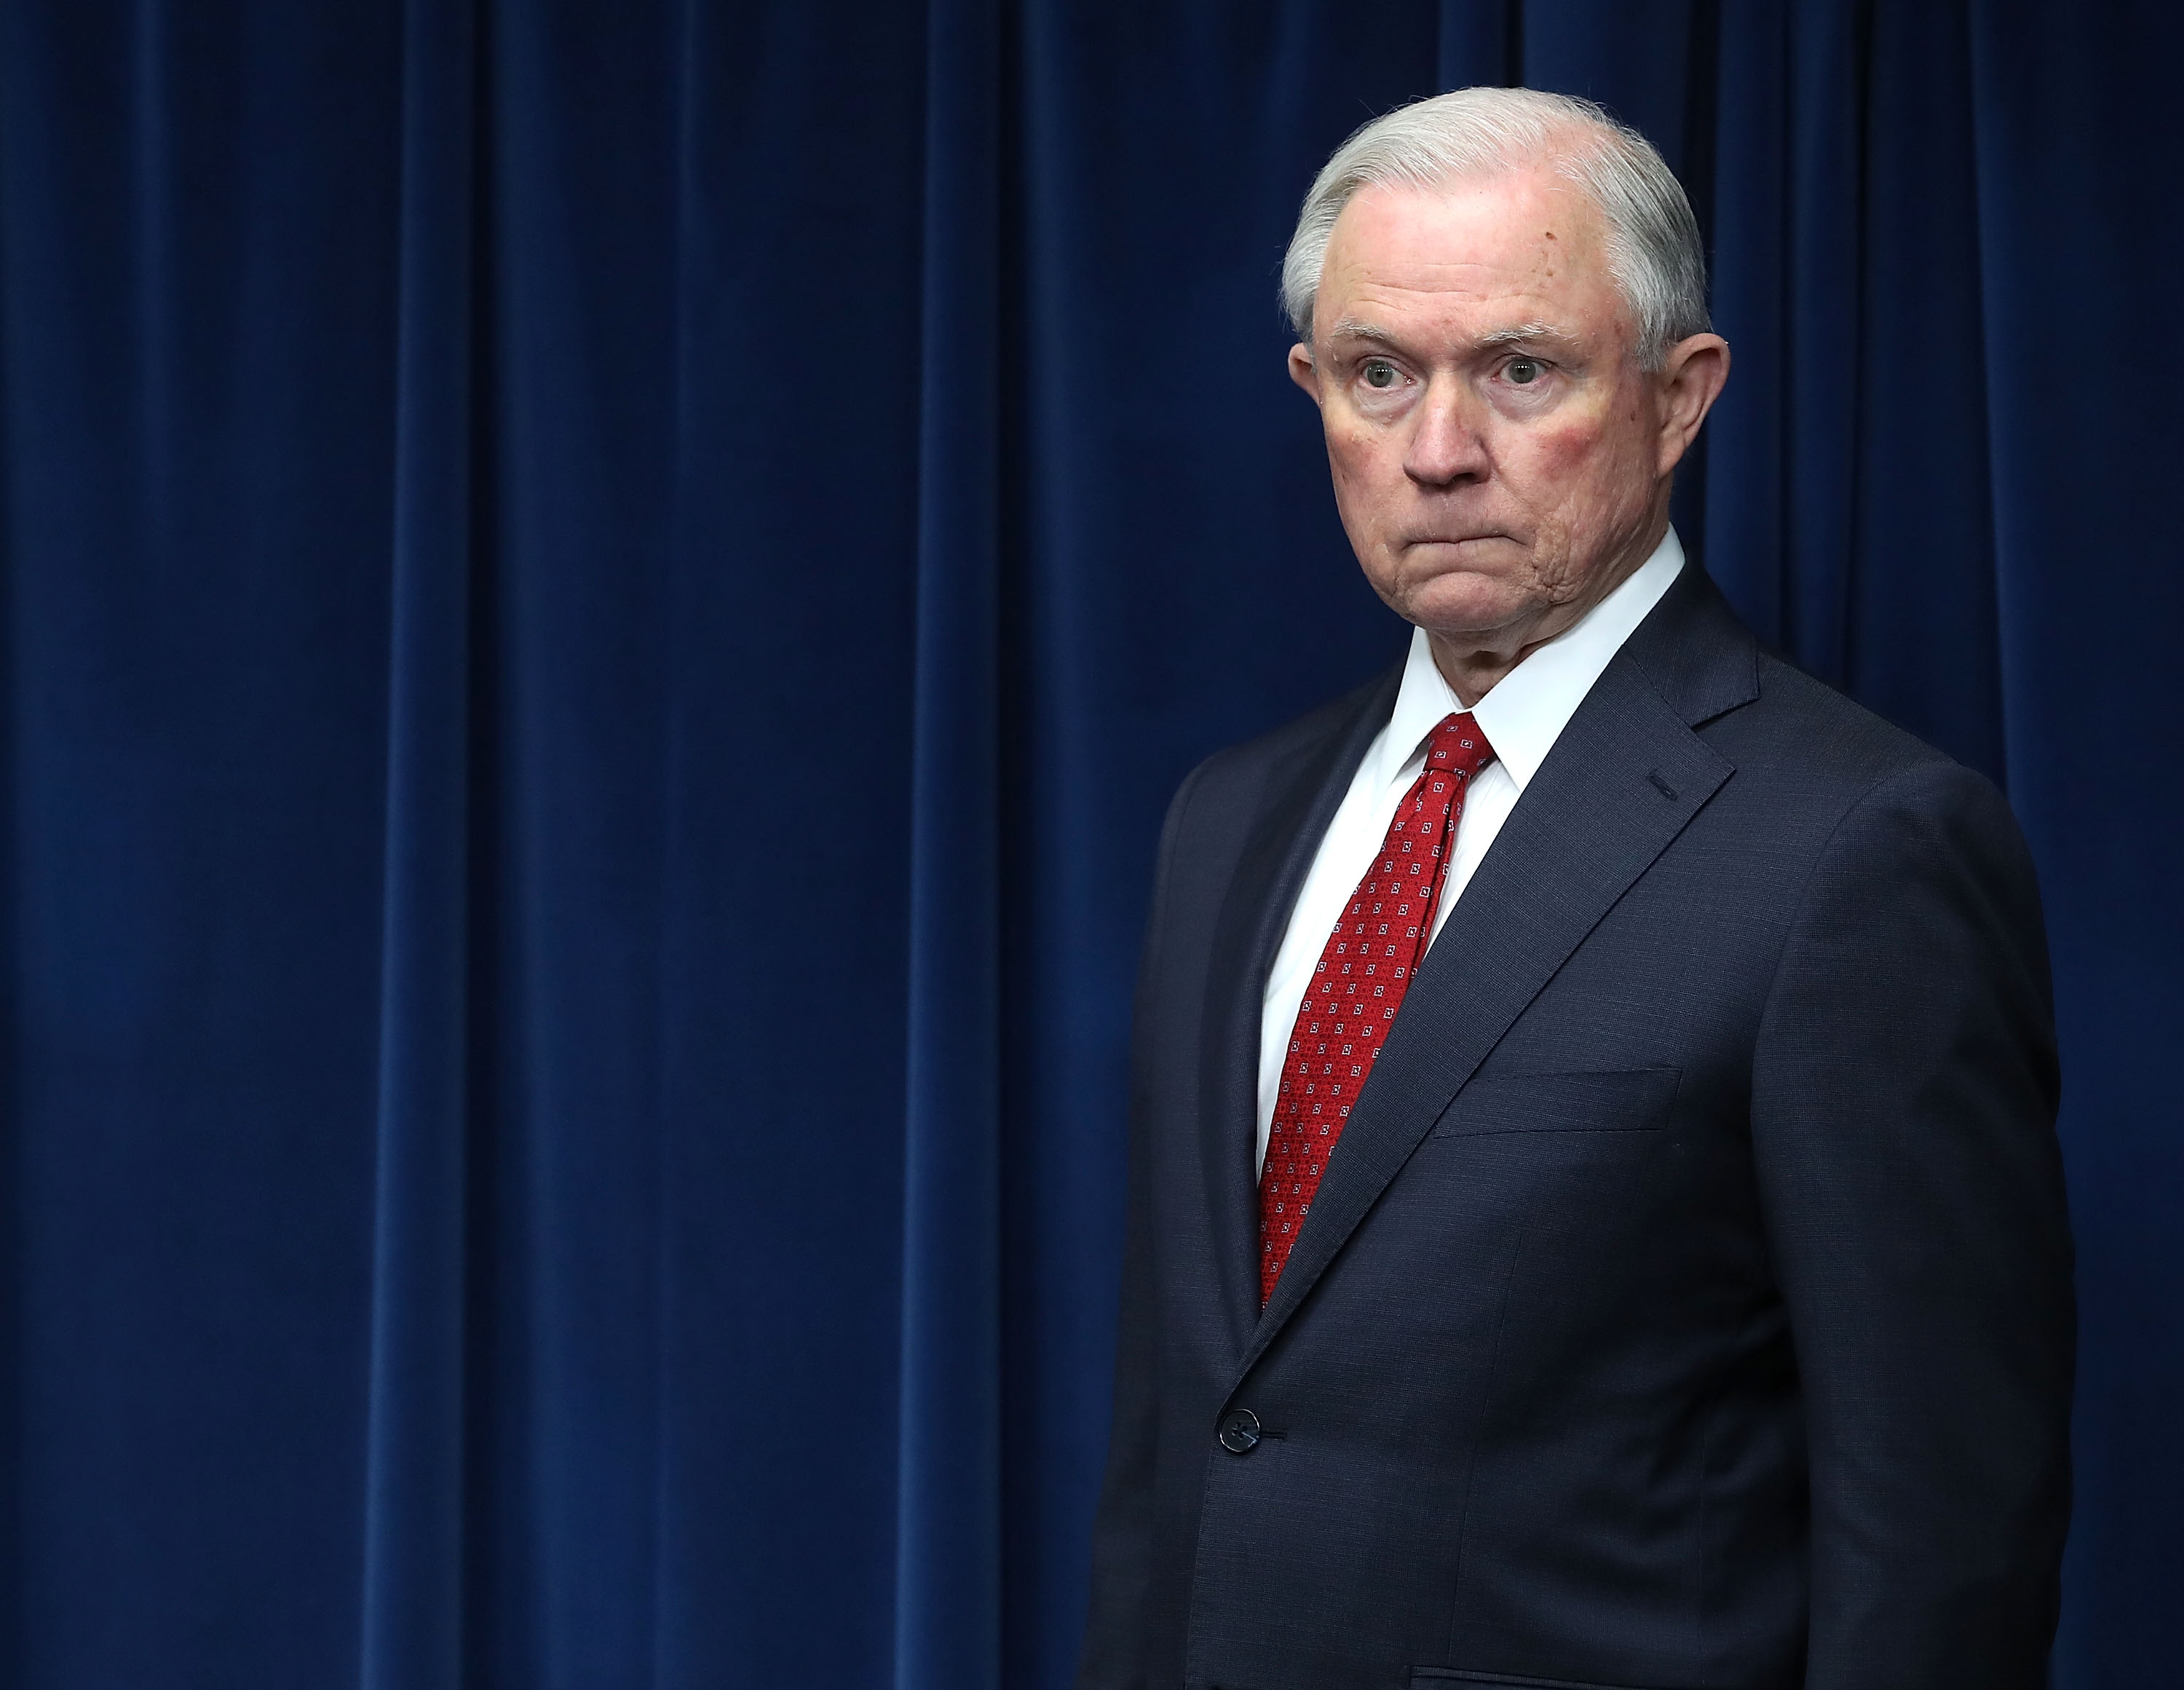 Jeff Sessions during a news conference at the U.S. Customs and Borders Protection headquarters, on March 6, 2017 in Washington, DC.